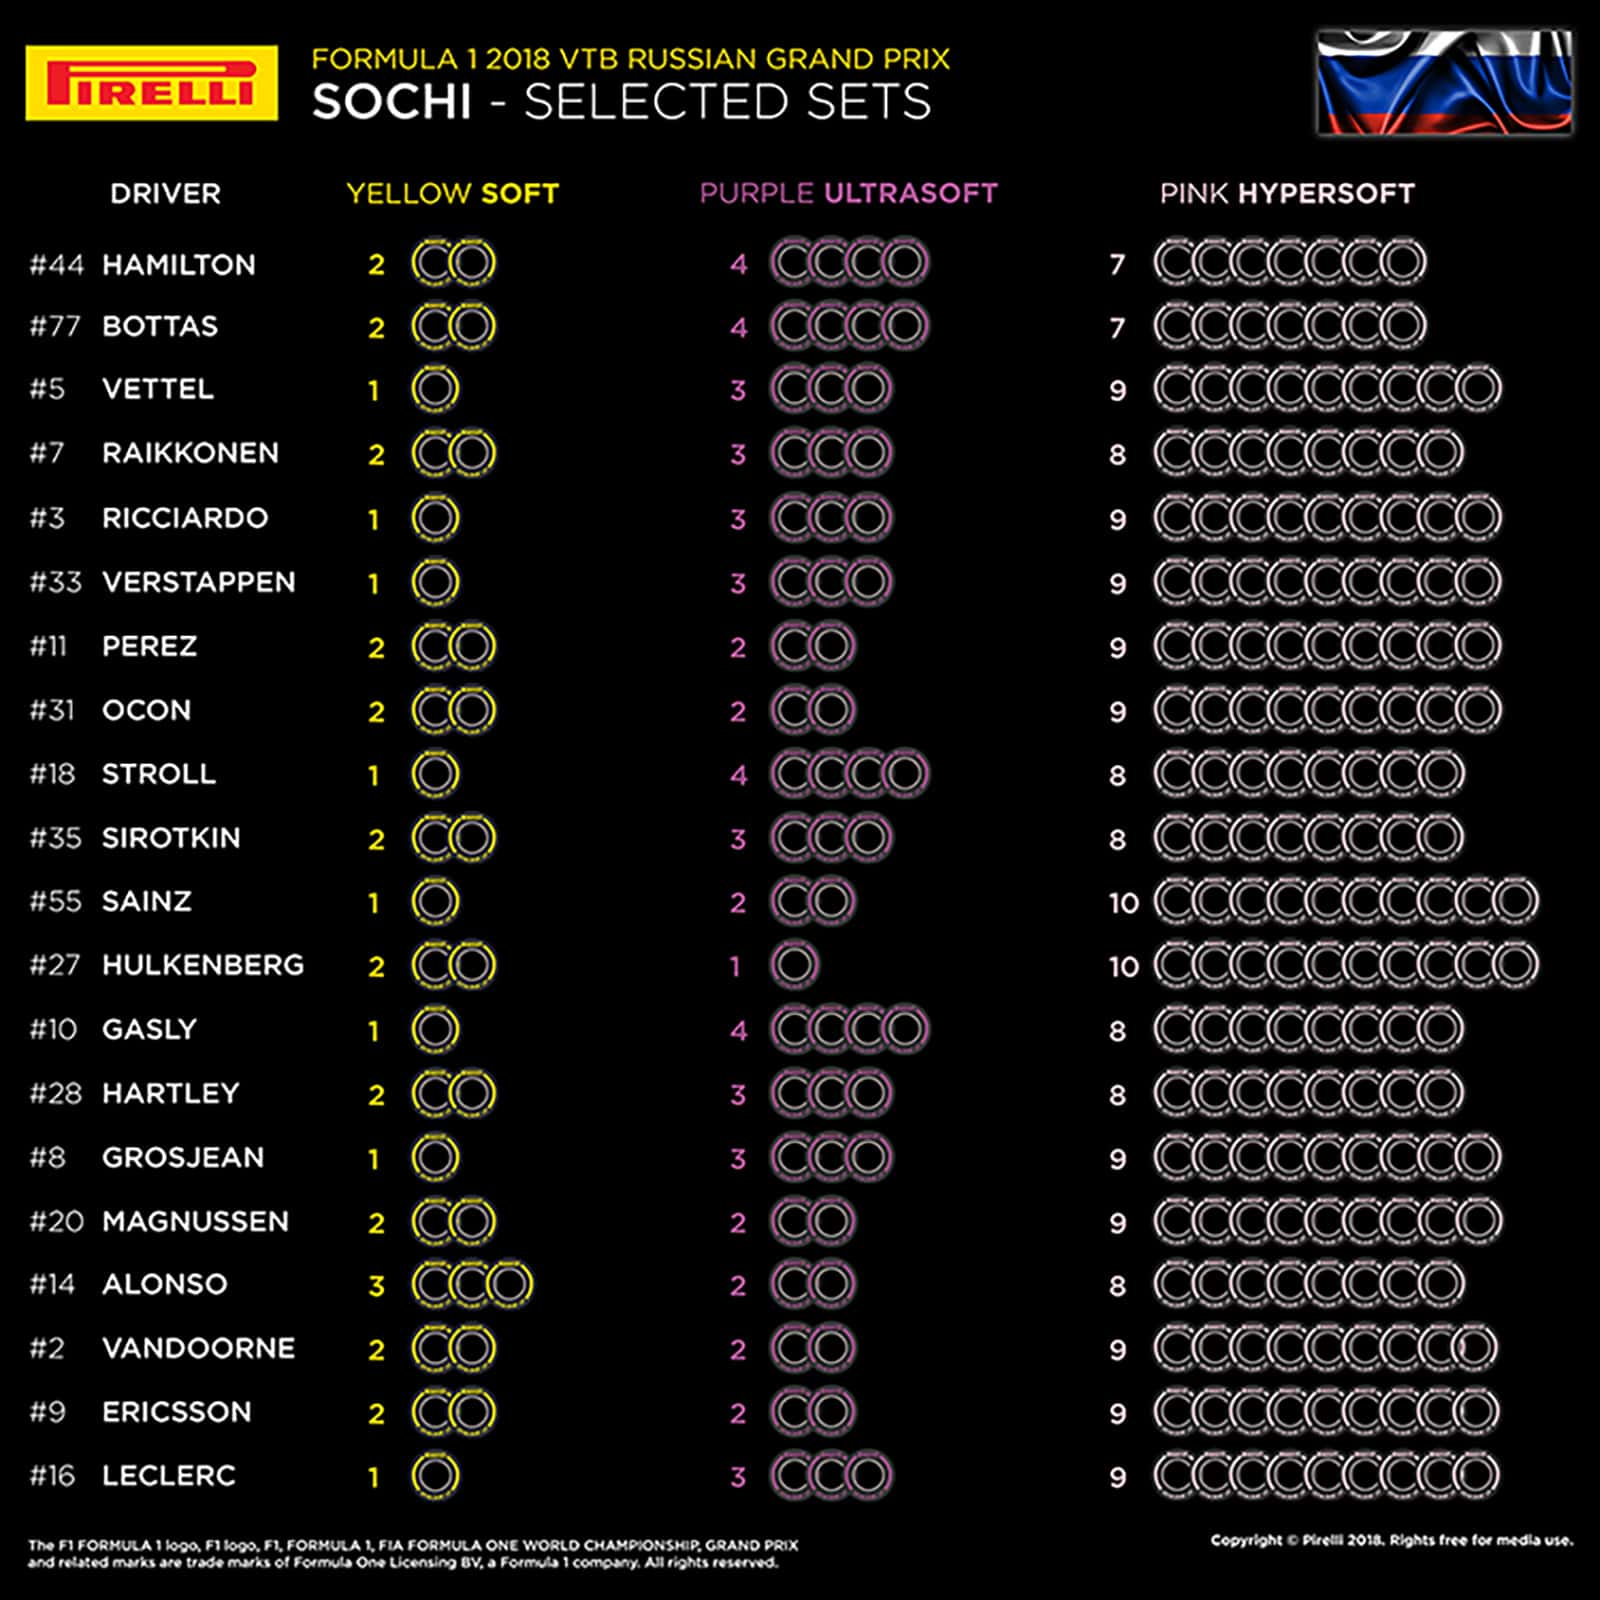 2018 F1 Russian Grand Prix Tyre Selection